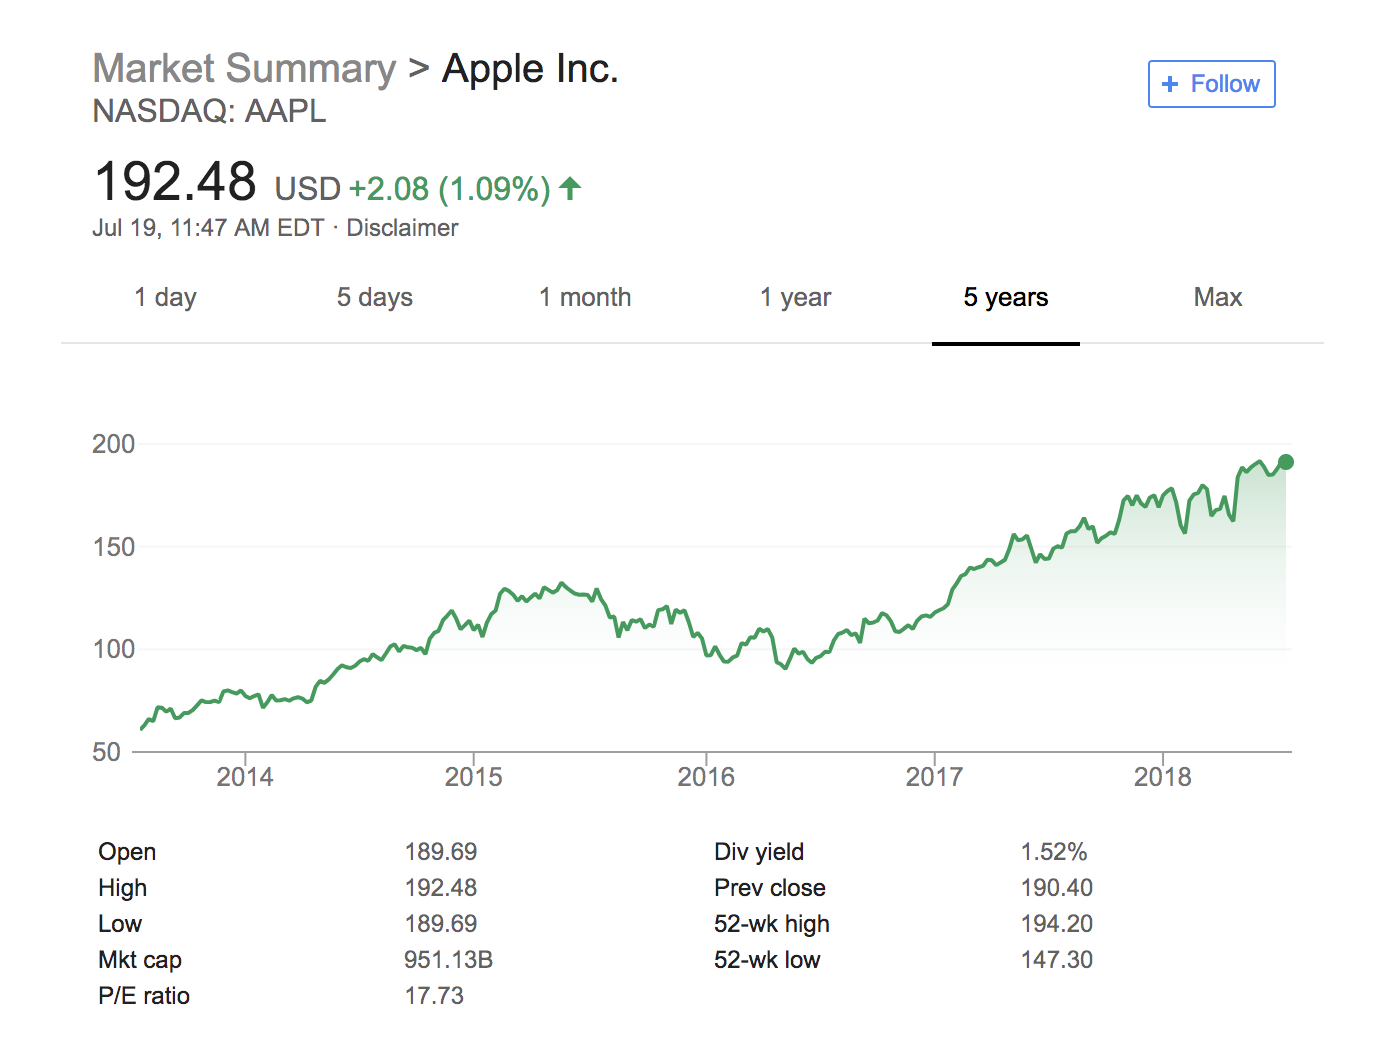 Google's stock chart for AAPL